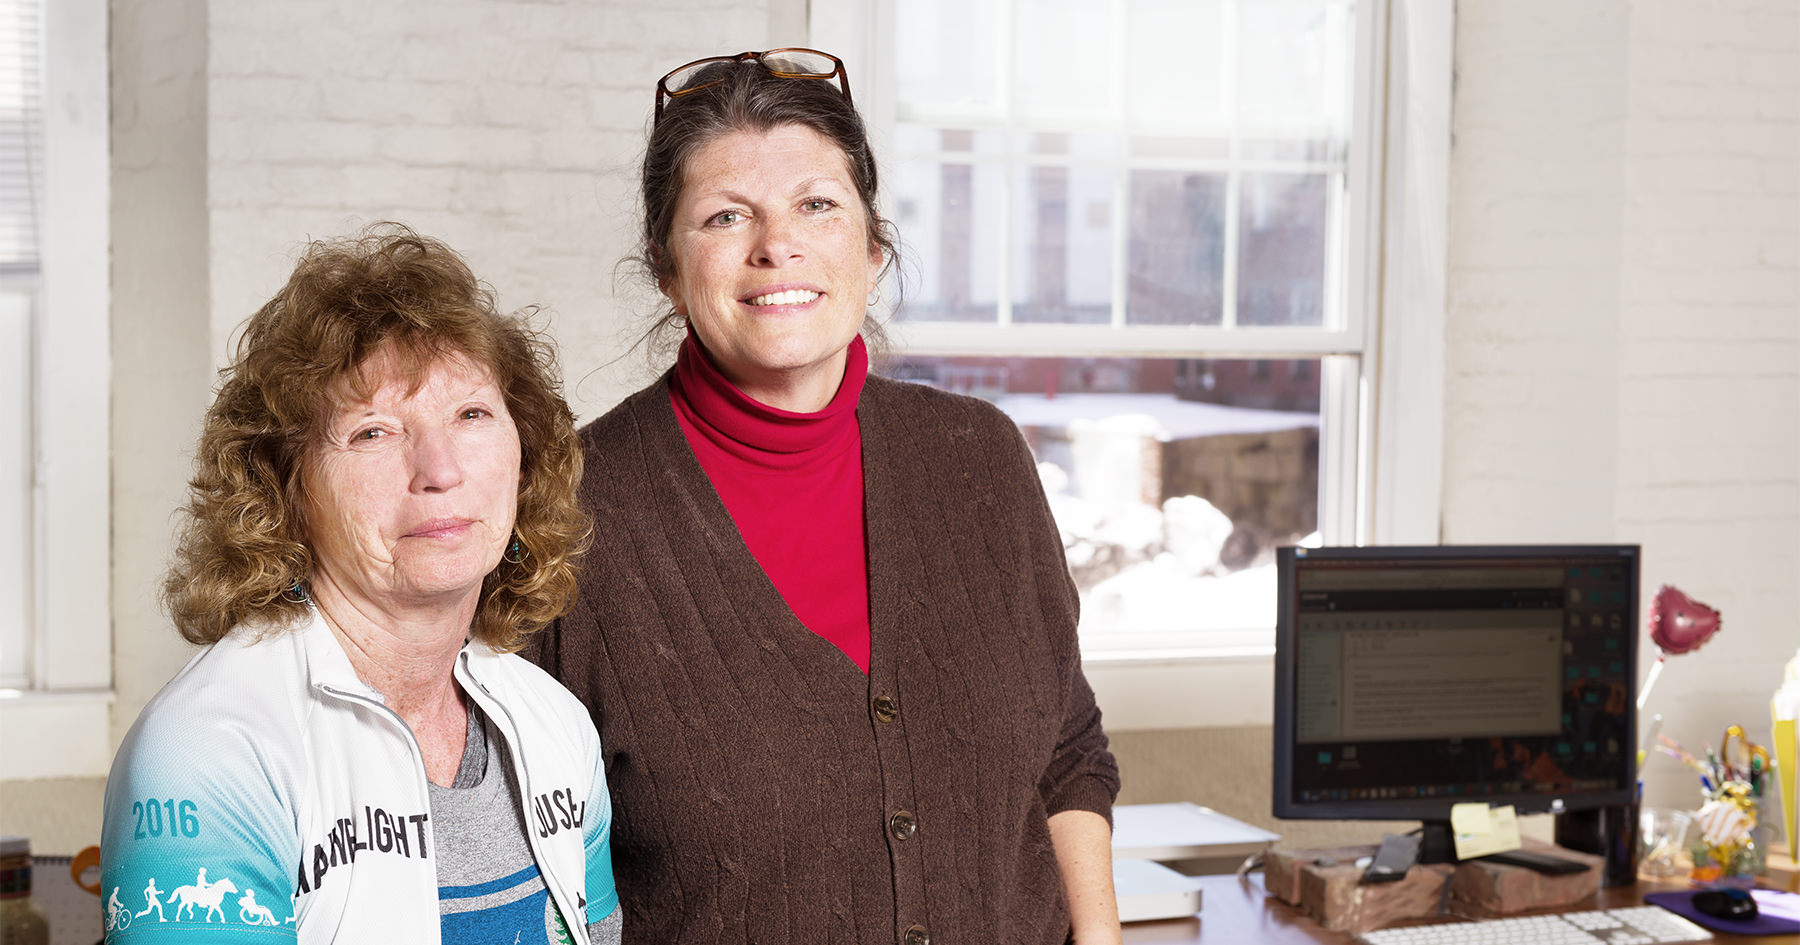 Carole and Nancy manage the Eastern Trail, part of the multi-state East Coast Greenway, from their offices at the Pepperell Mill Campus. Photograph by Portland Headshot